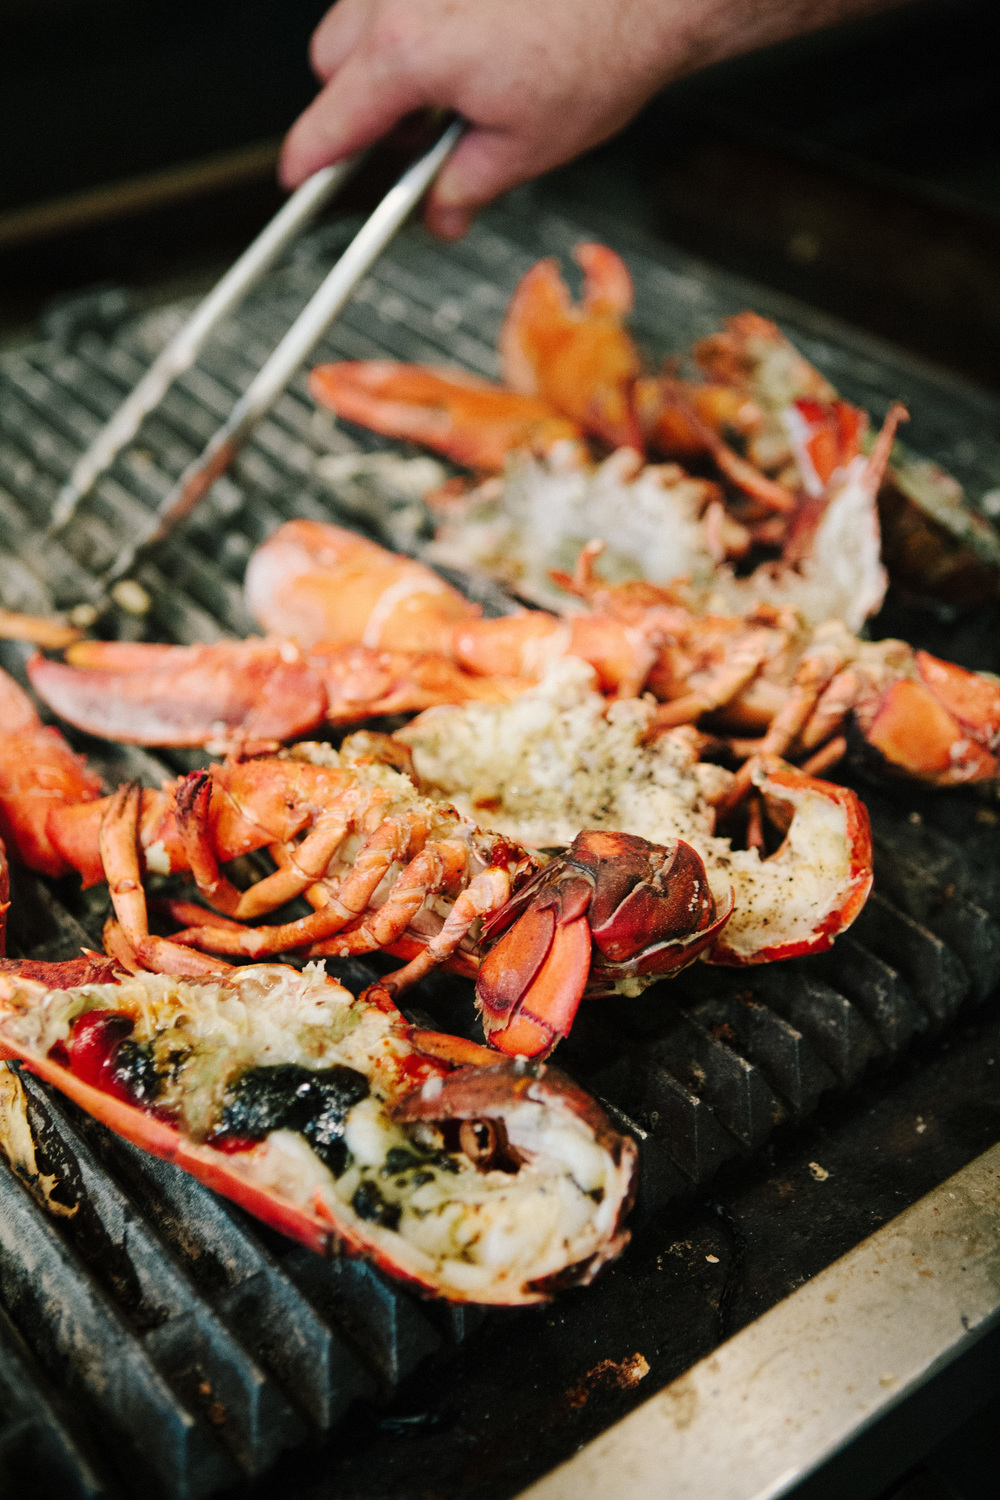 The lobster is fire-grilled and served with sweet pea pancakes, clarified butter and lemon.